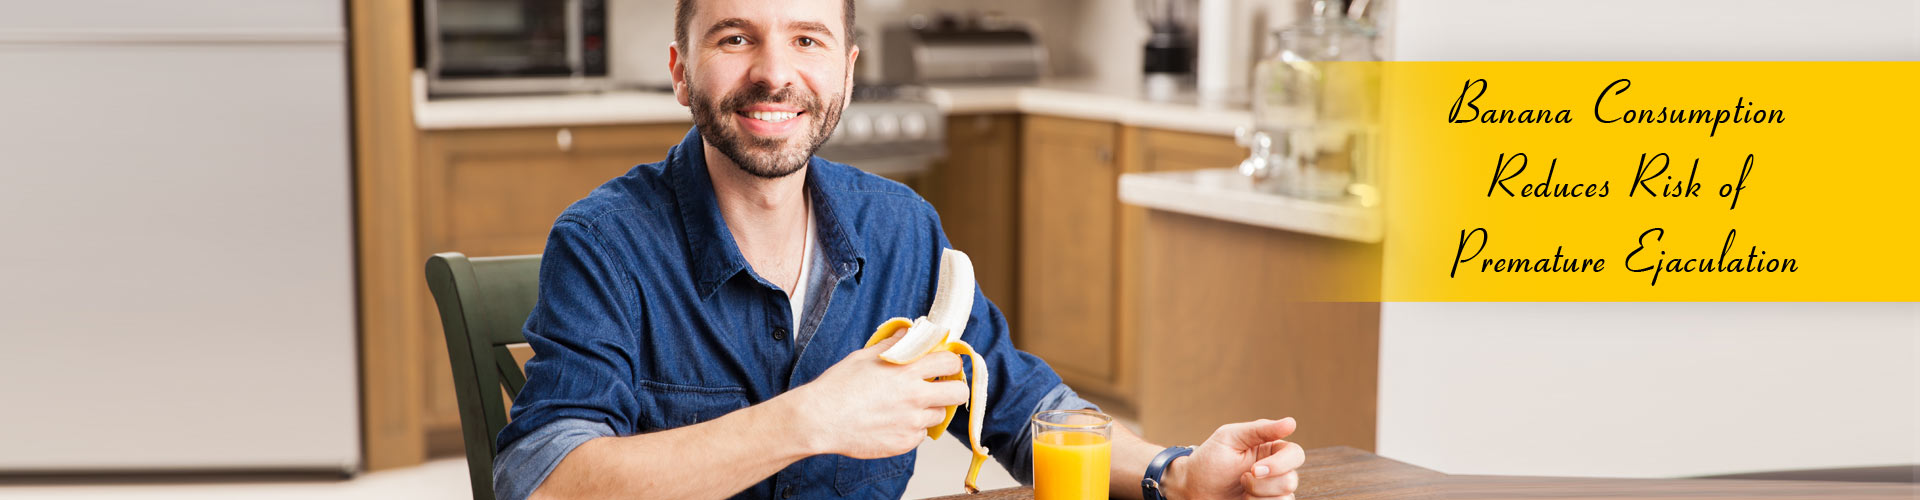 Banana Consumption Reduces Risk of Premature Ejaculation